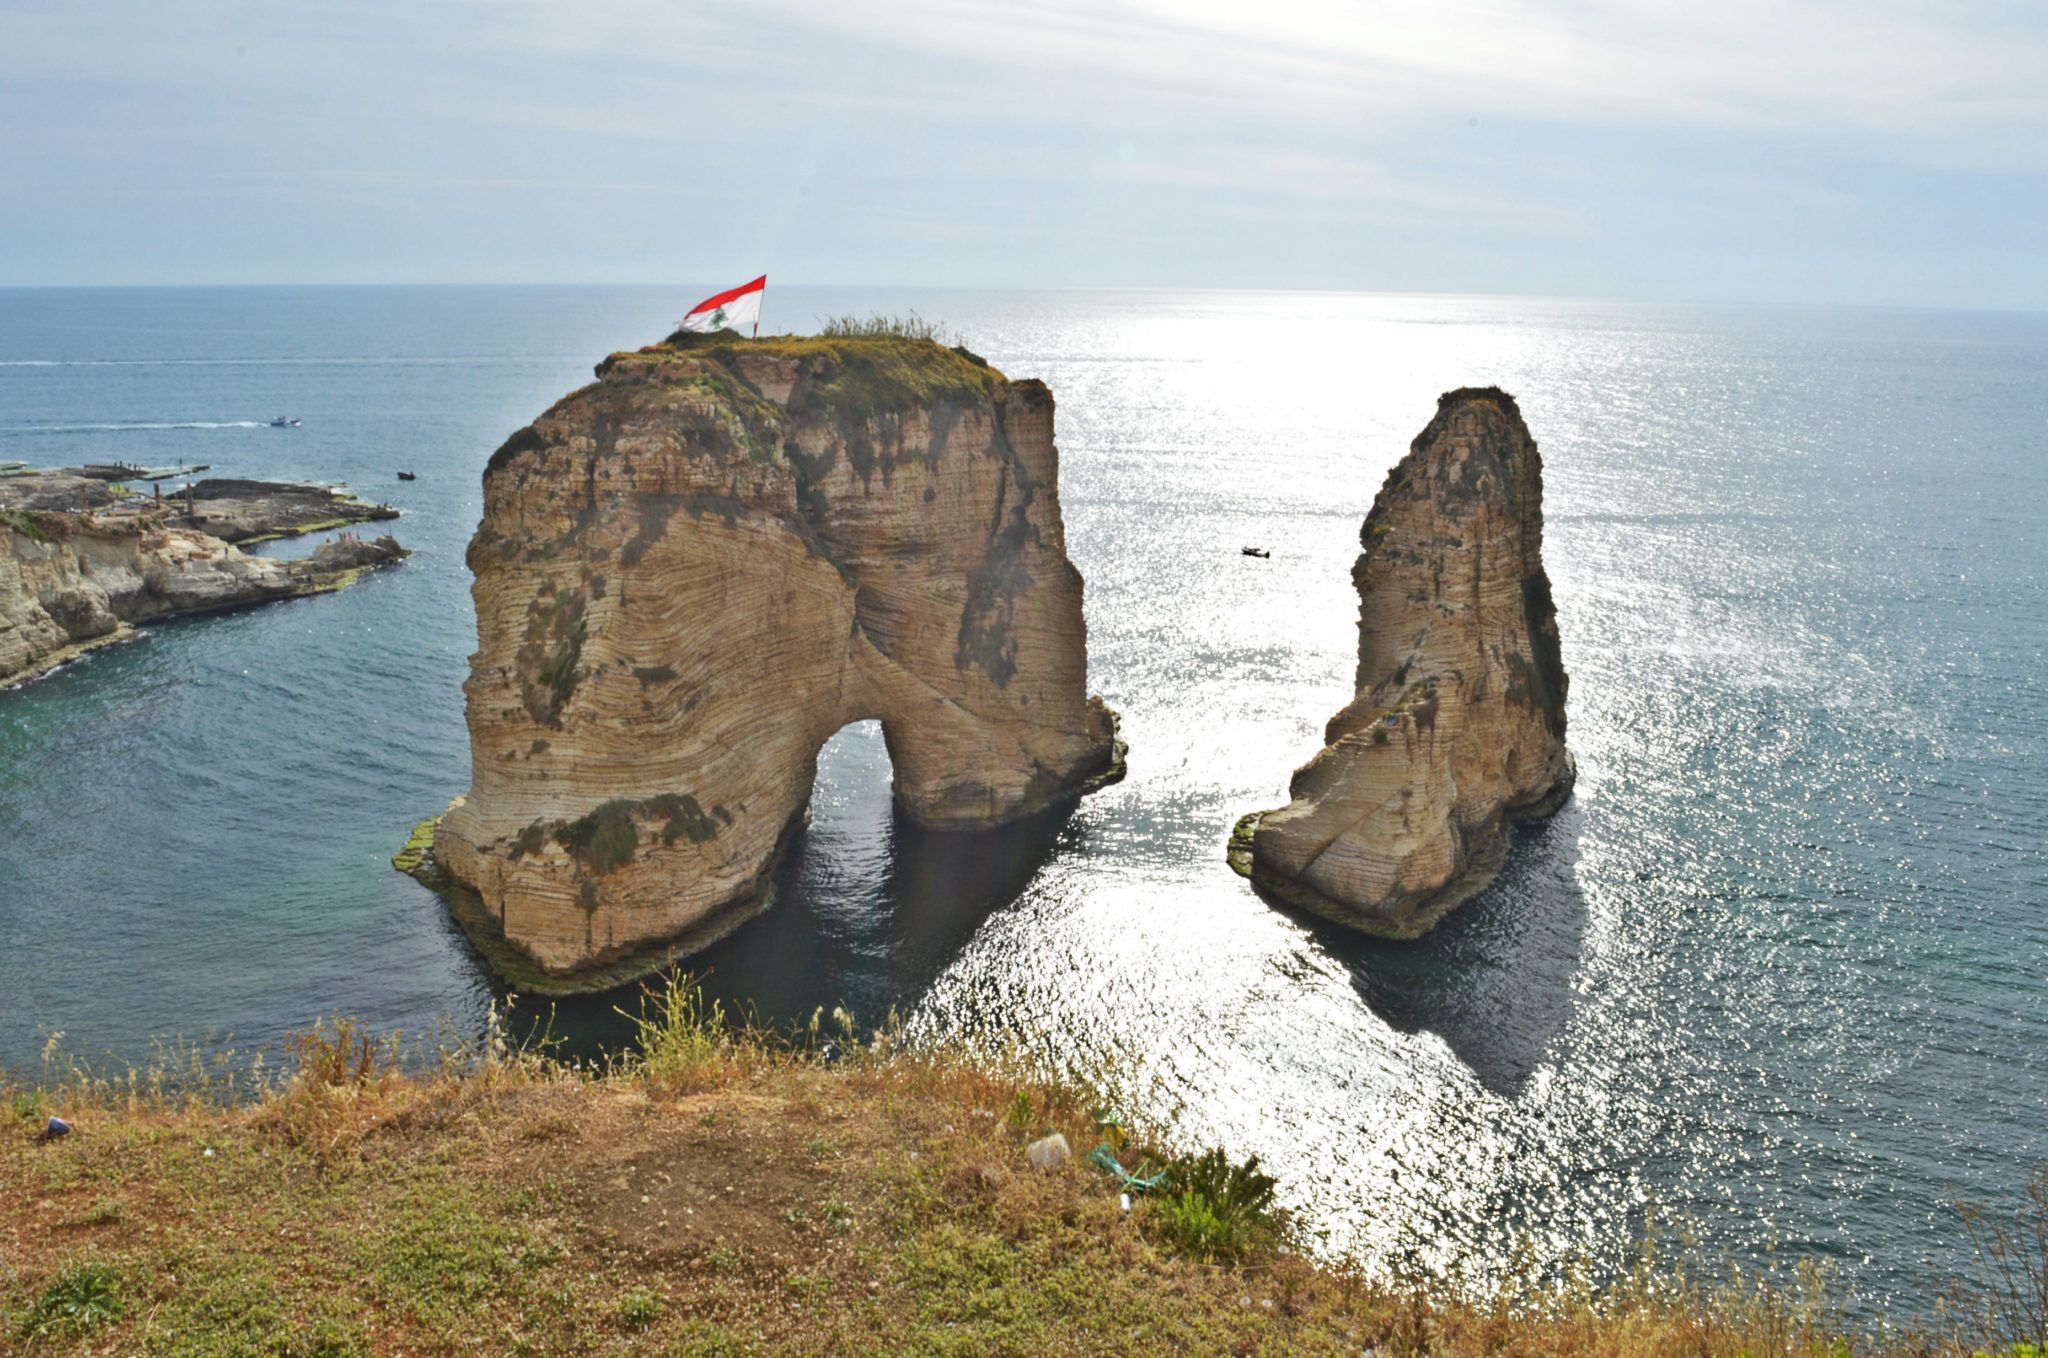 The Pigeon rocks are the most famous landmark of Beirut